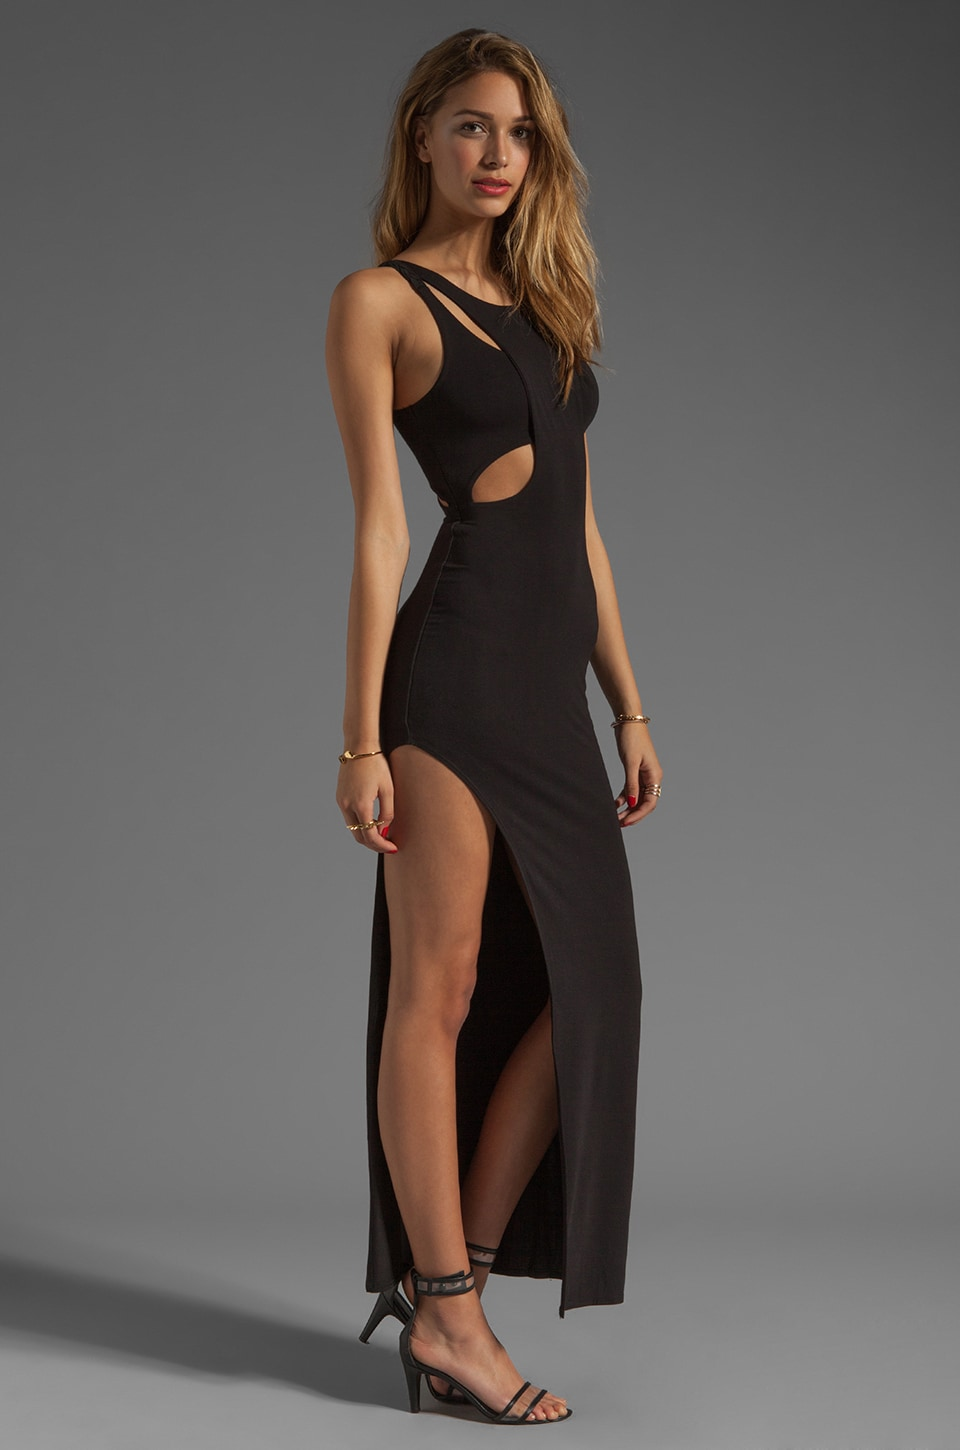 bless'ed are the meek Holey Smoke Dress in Black